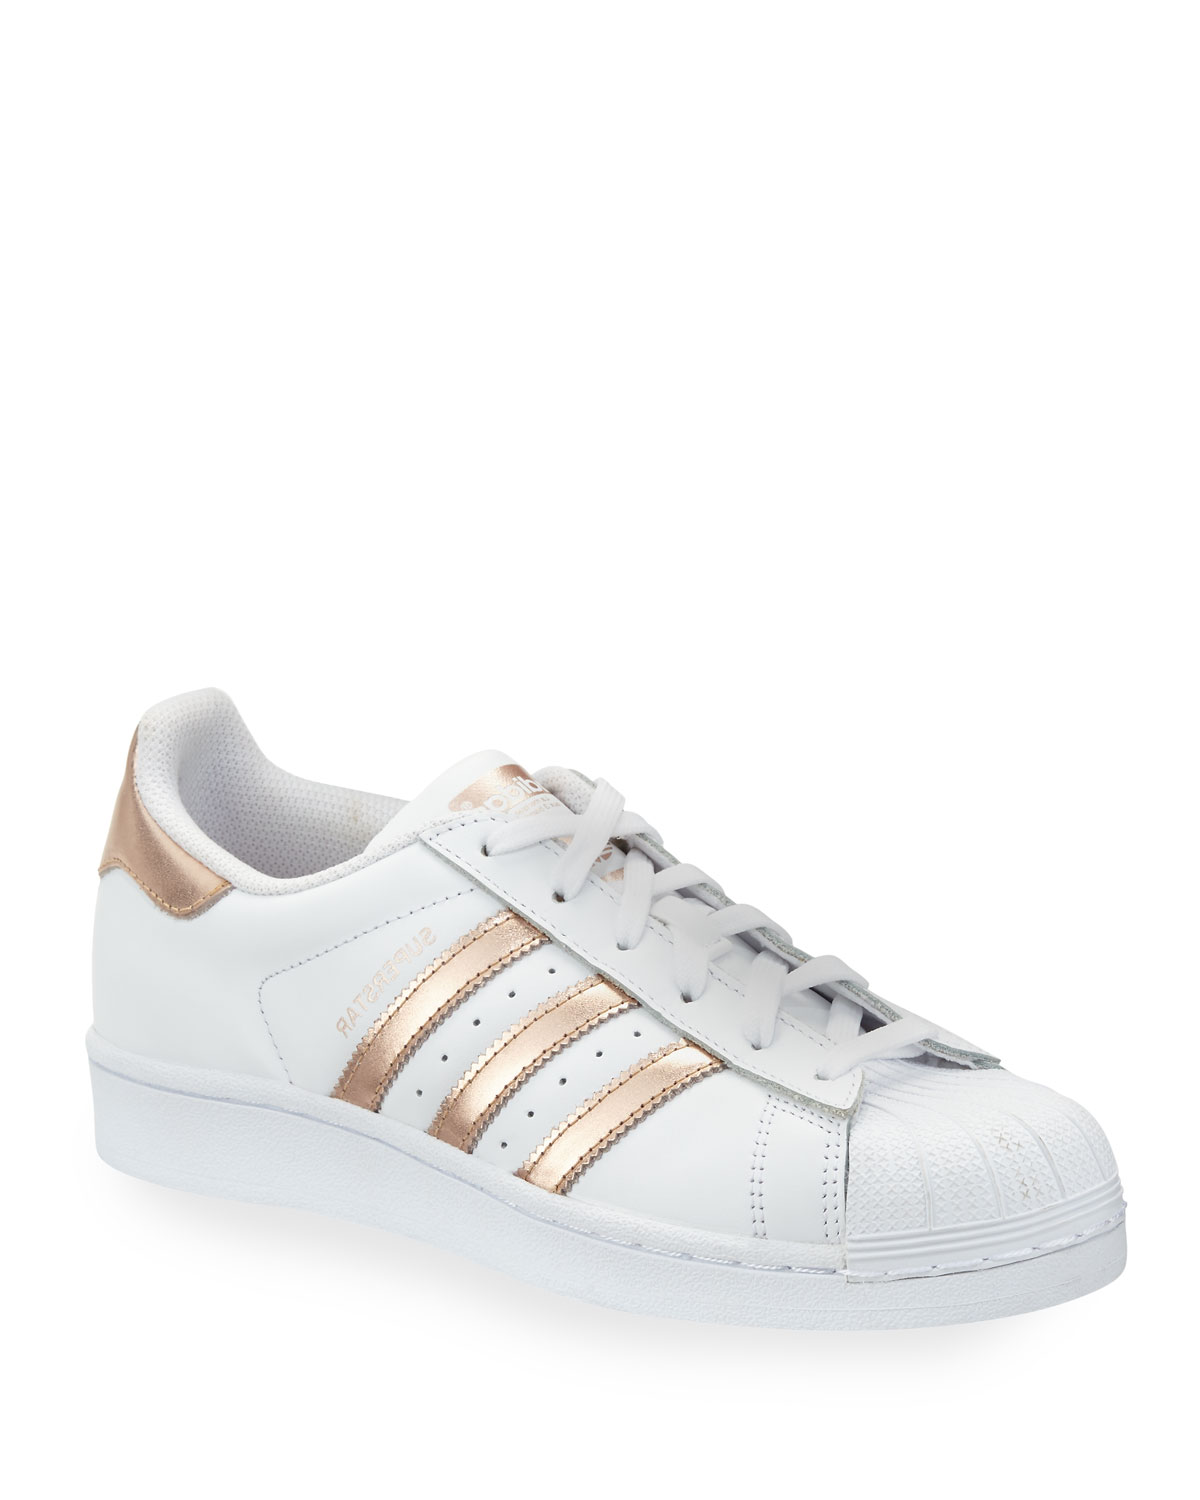 the best attitude d3eeb 69155 Adidas Superstar Original Fashion Sneakers, White Rose Gold